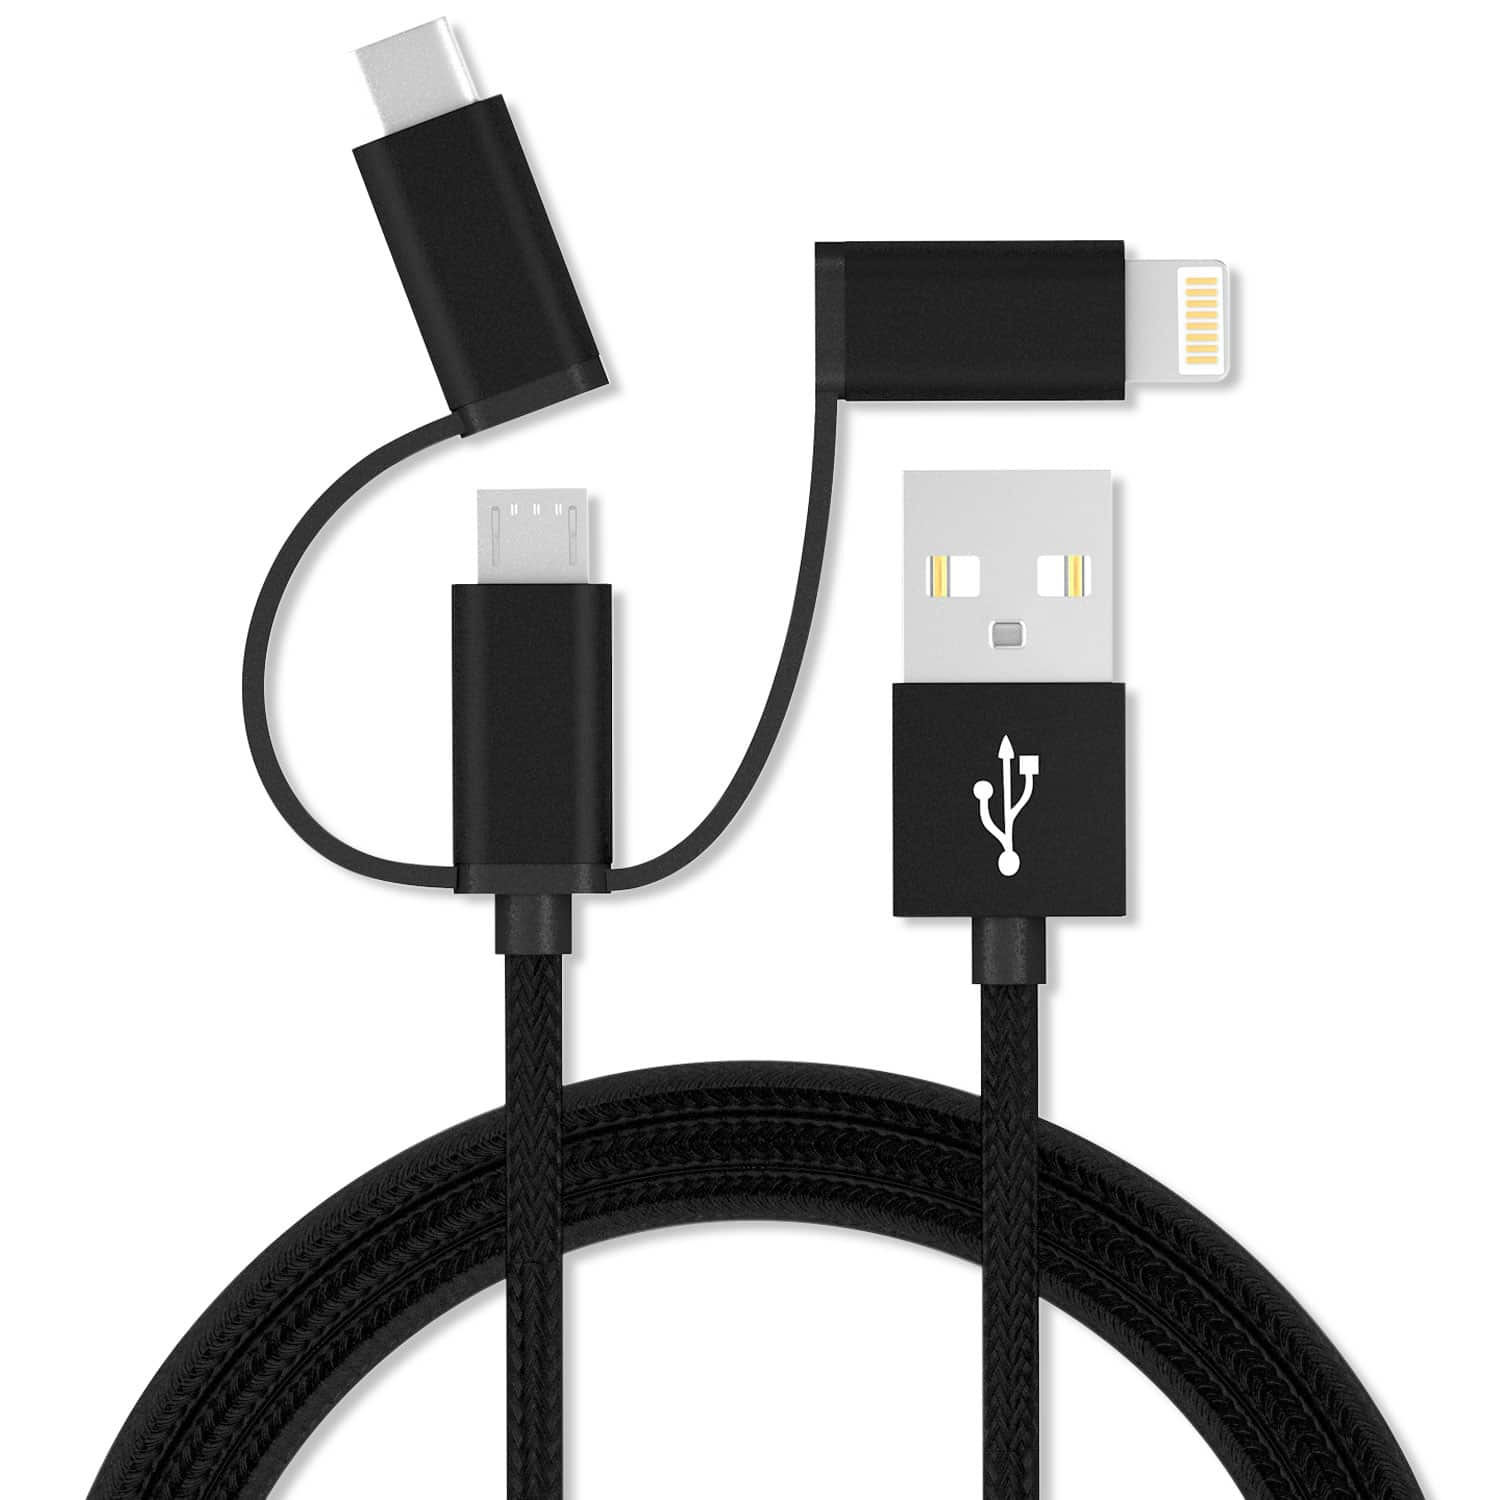 Vida IT V-C5 Braided 3-in-1 cable